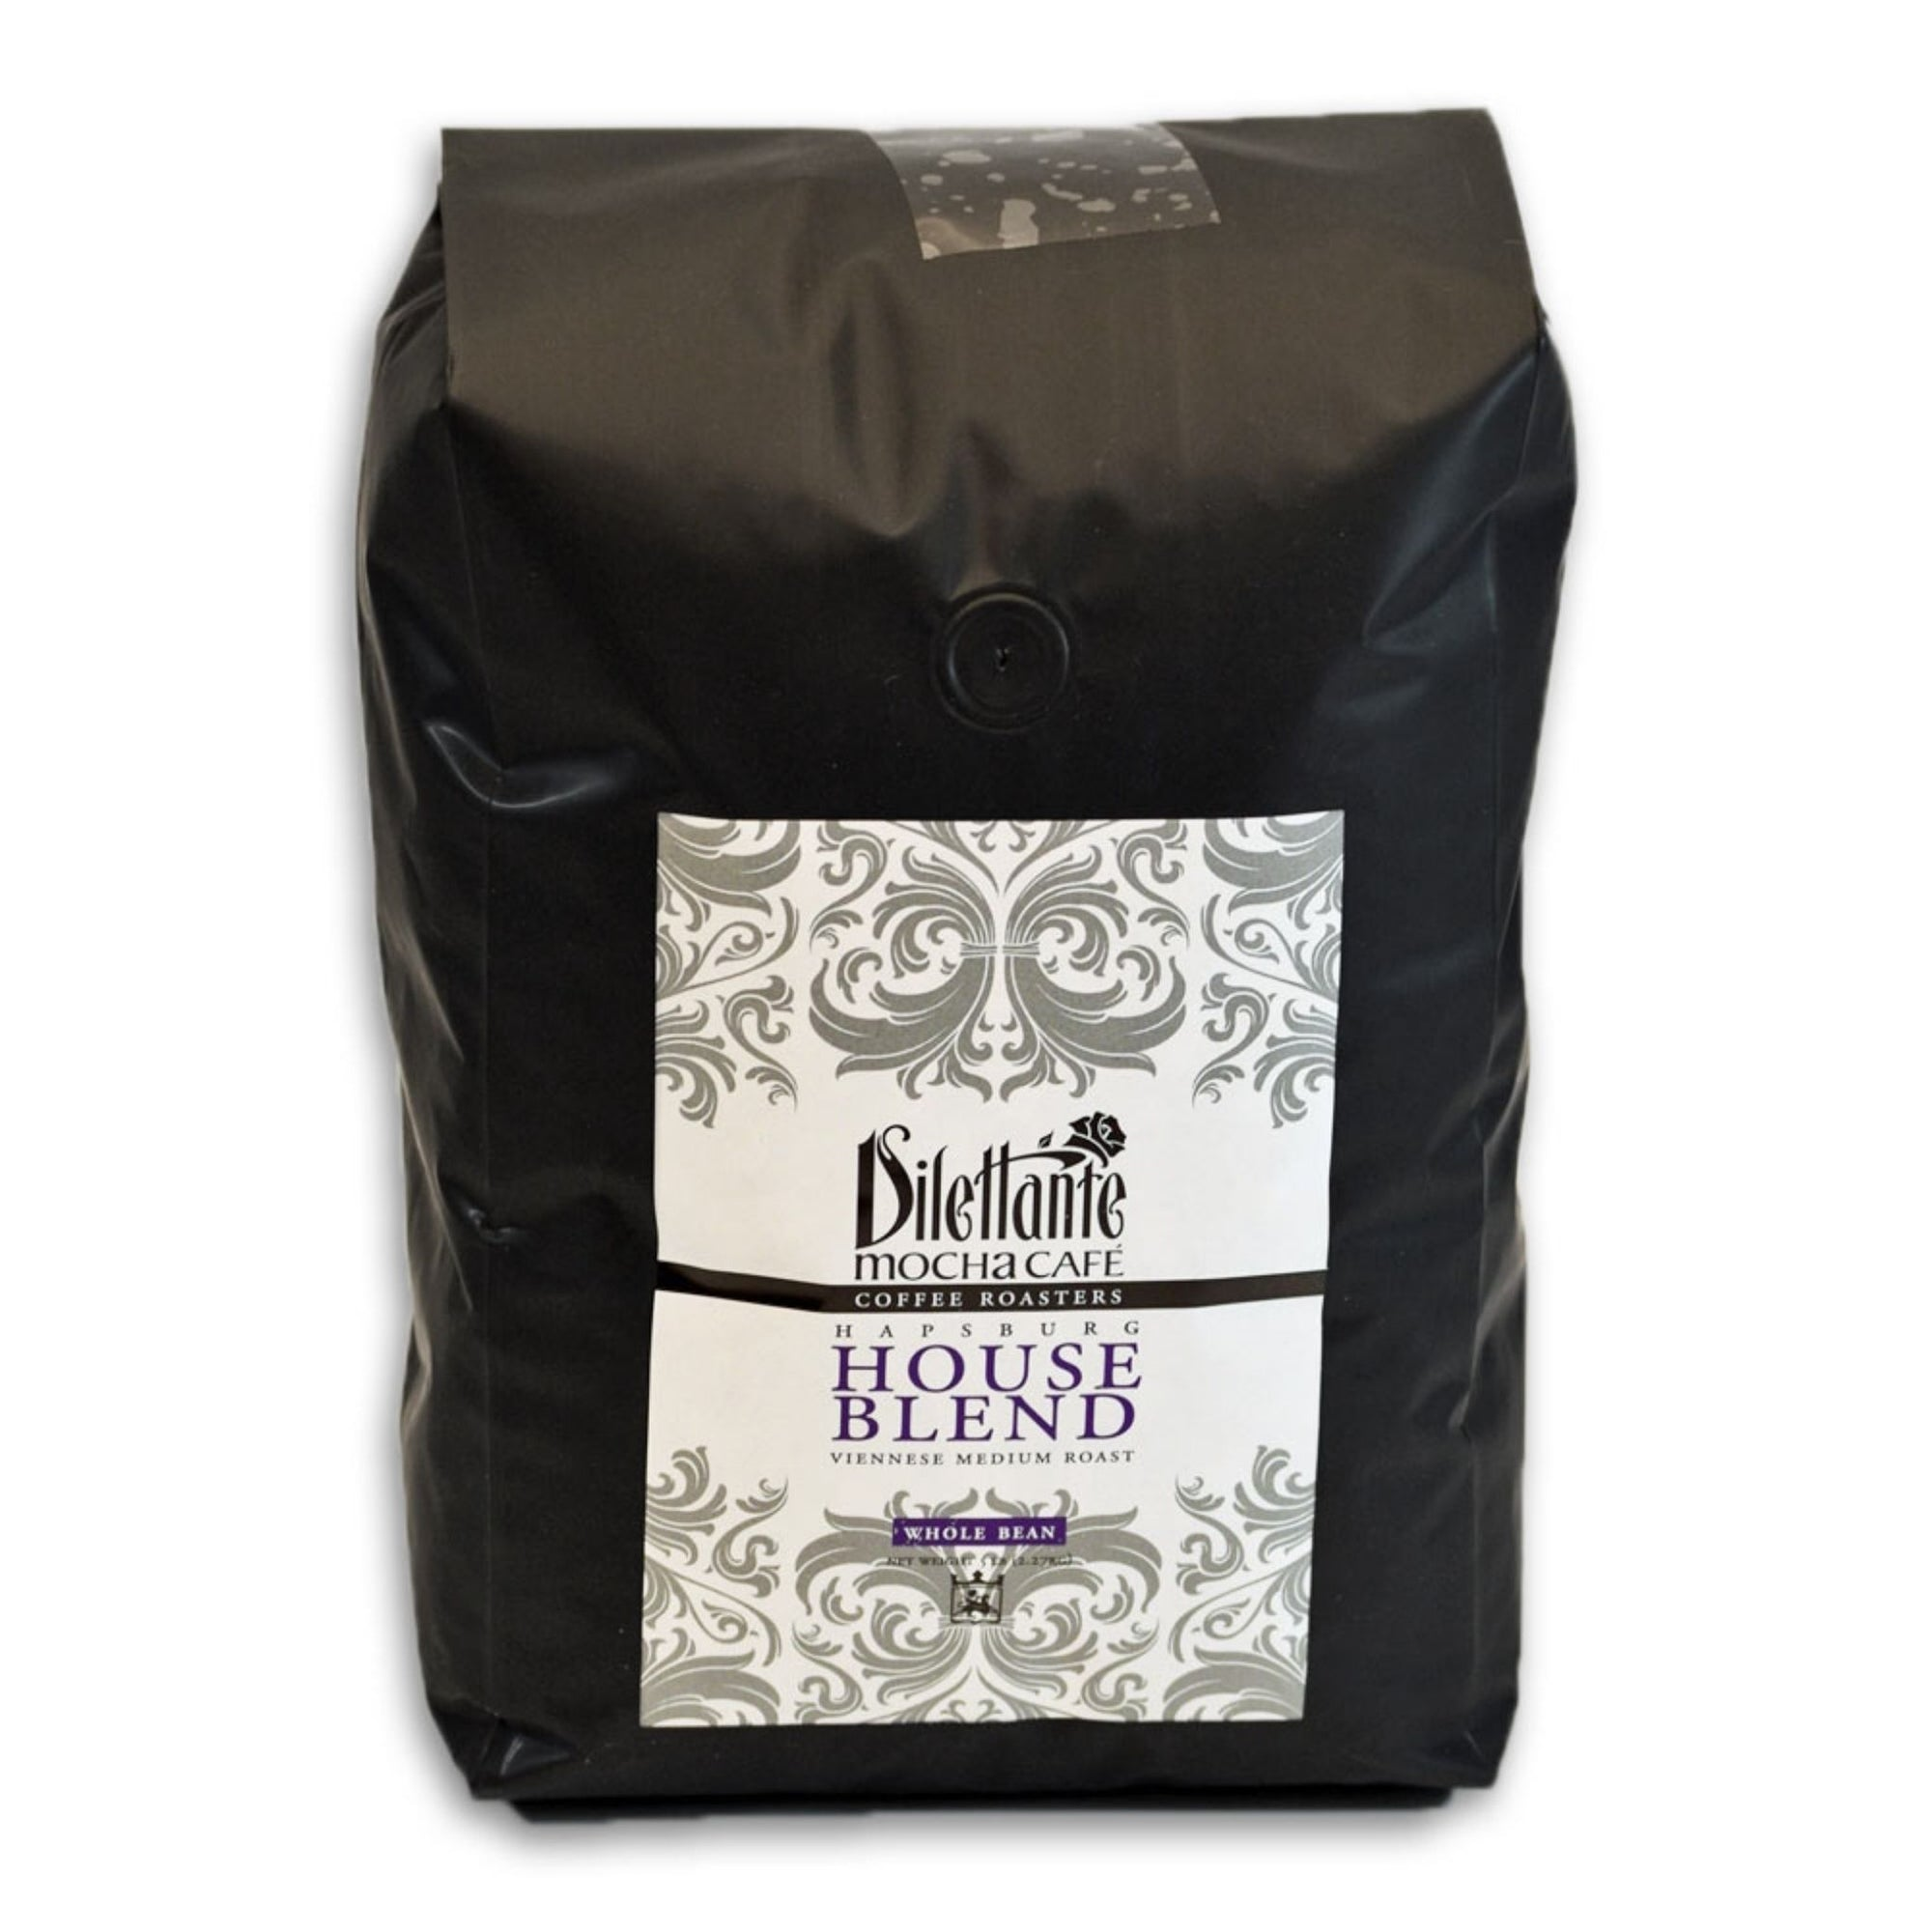 Dilettante Chocolates Mocha Cafe 5-Pound Whole Bean Blend